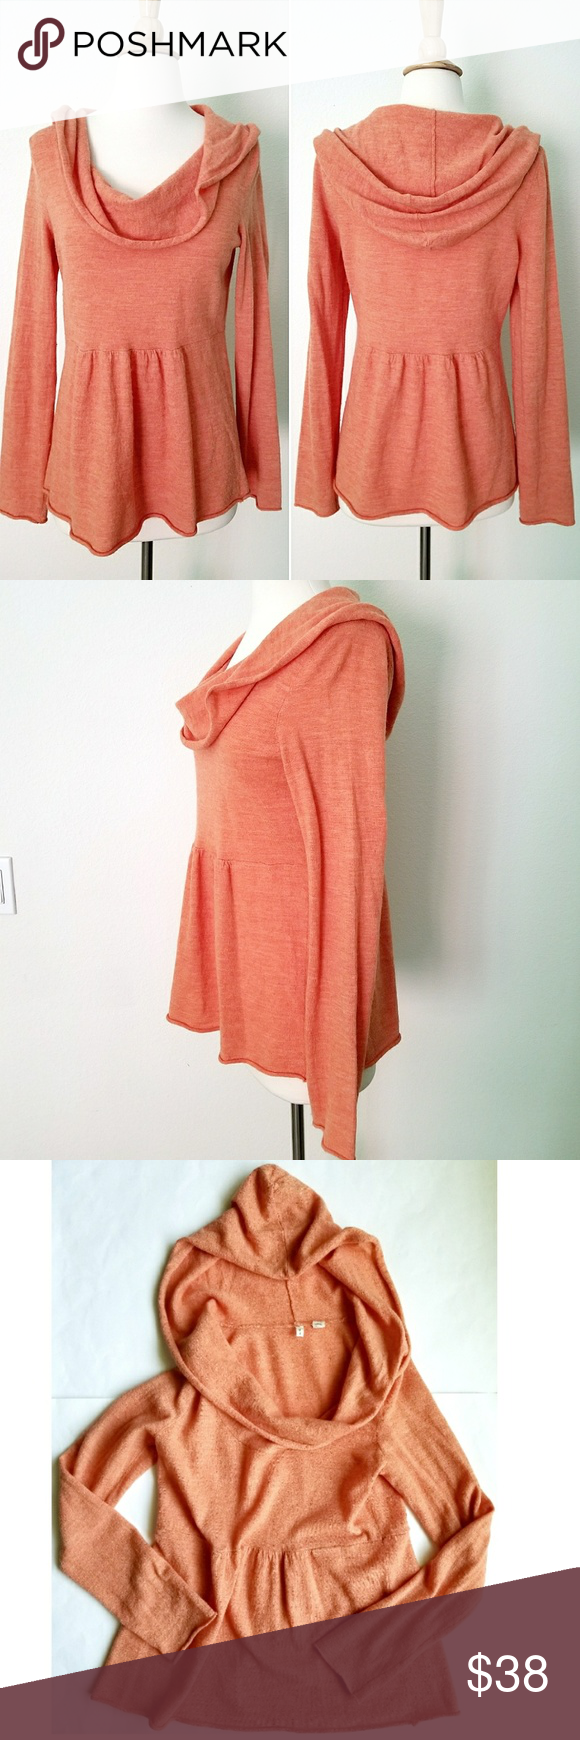 Anthropologie Sweater | Hooded cowl, Cowl neck and Anthropologie